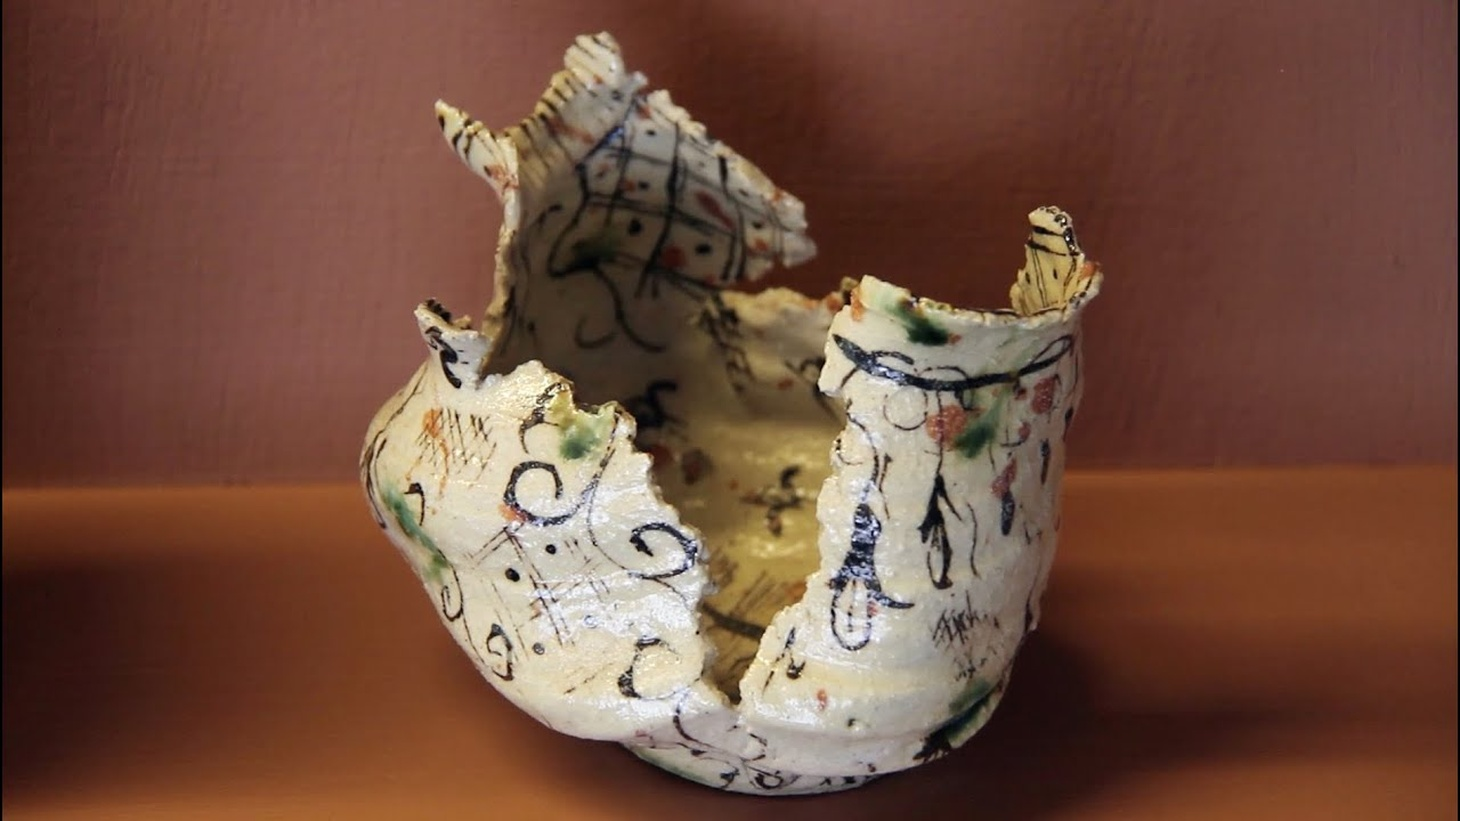 An example of the 'keshiki', the landscape of the surface that makes a work unique, by ceramicists Furuta Oribe, from the Collection of Gordon Brodfuehrer